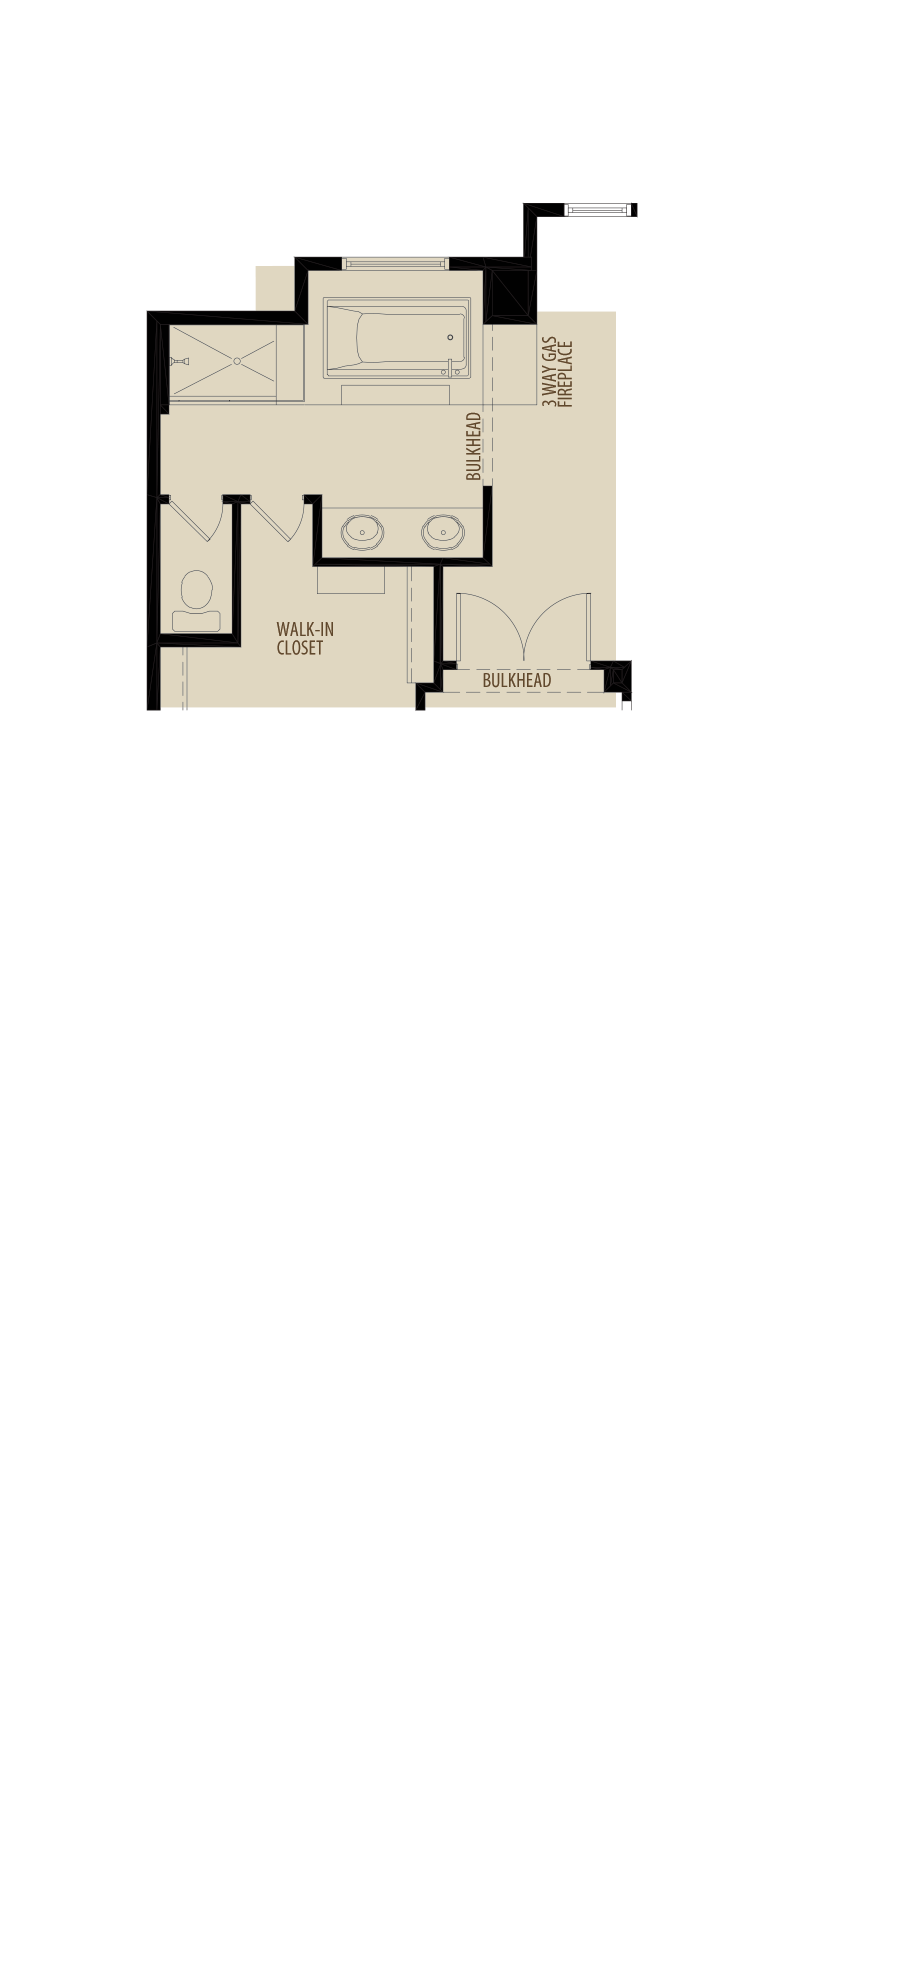 Revised Ensuite Layout adds 7 sq ft